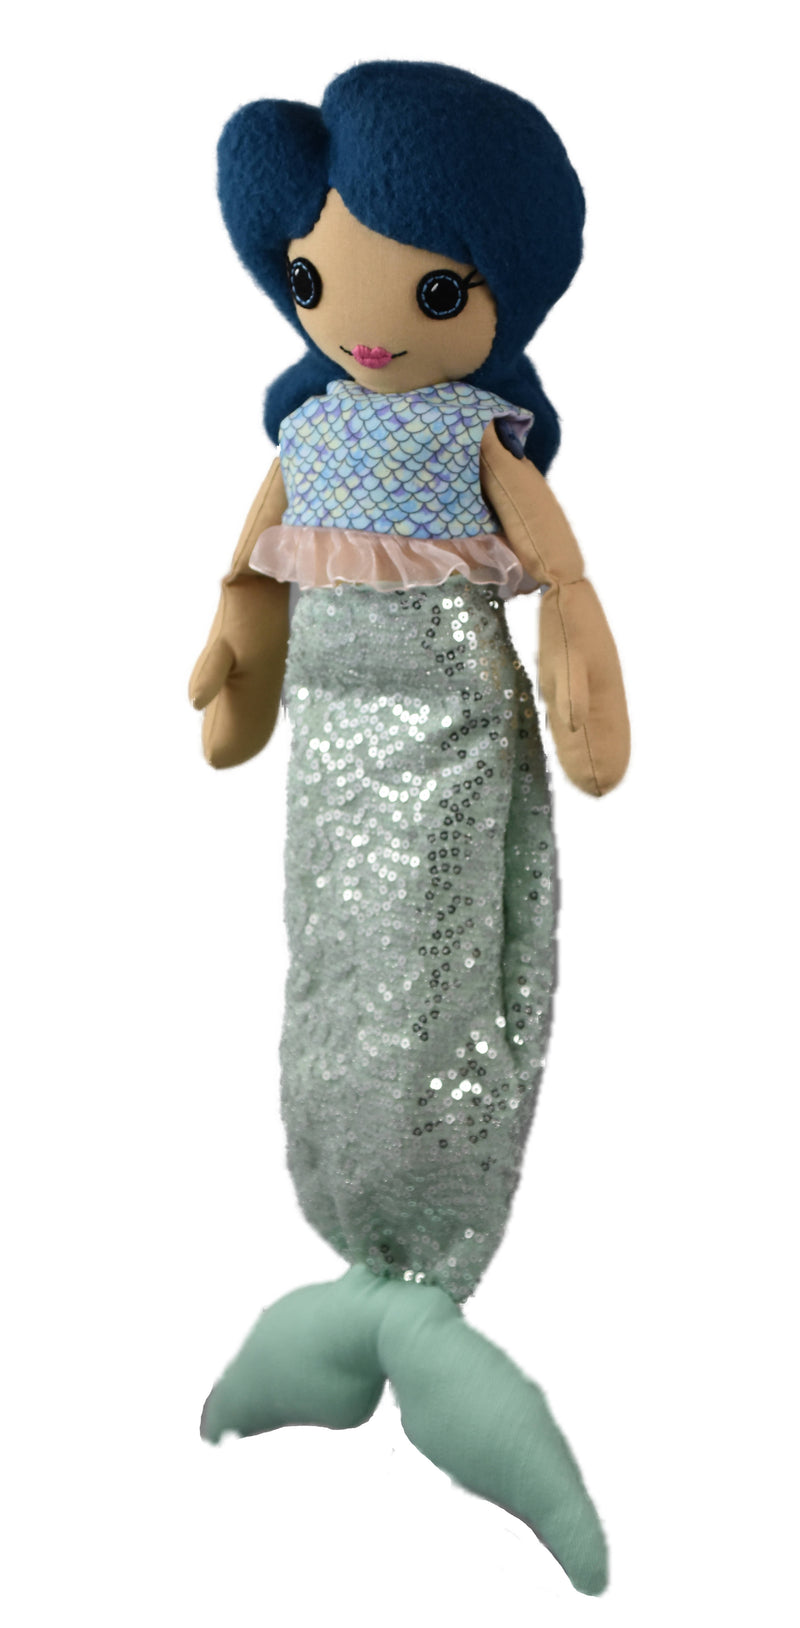 Sirena Mermaid - Cloth Doll / Collectible Artist Doll OOAK